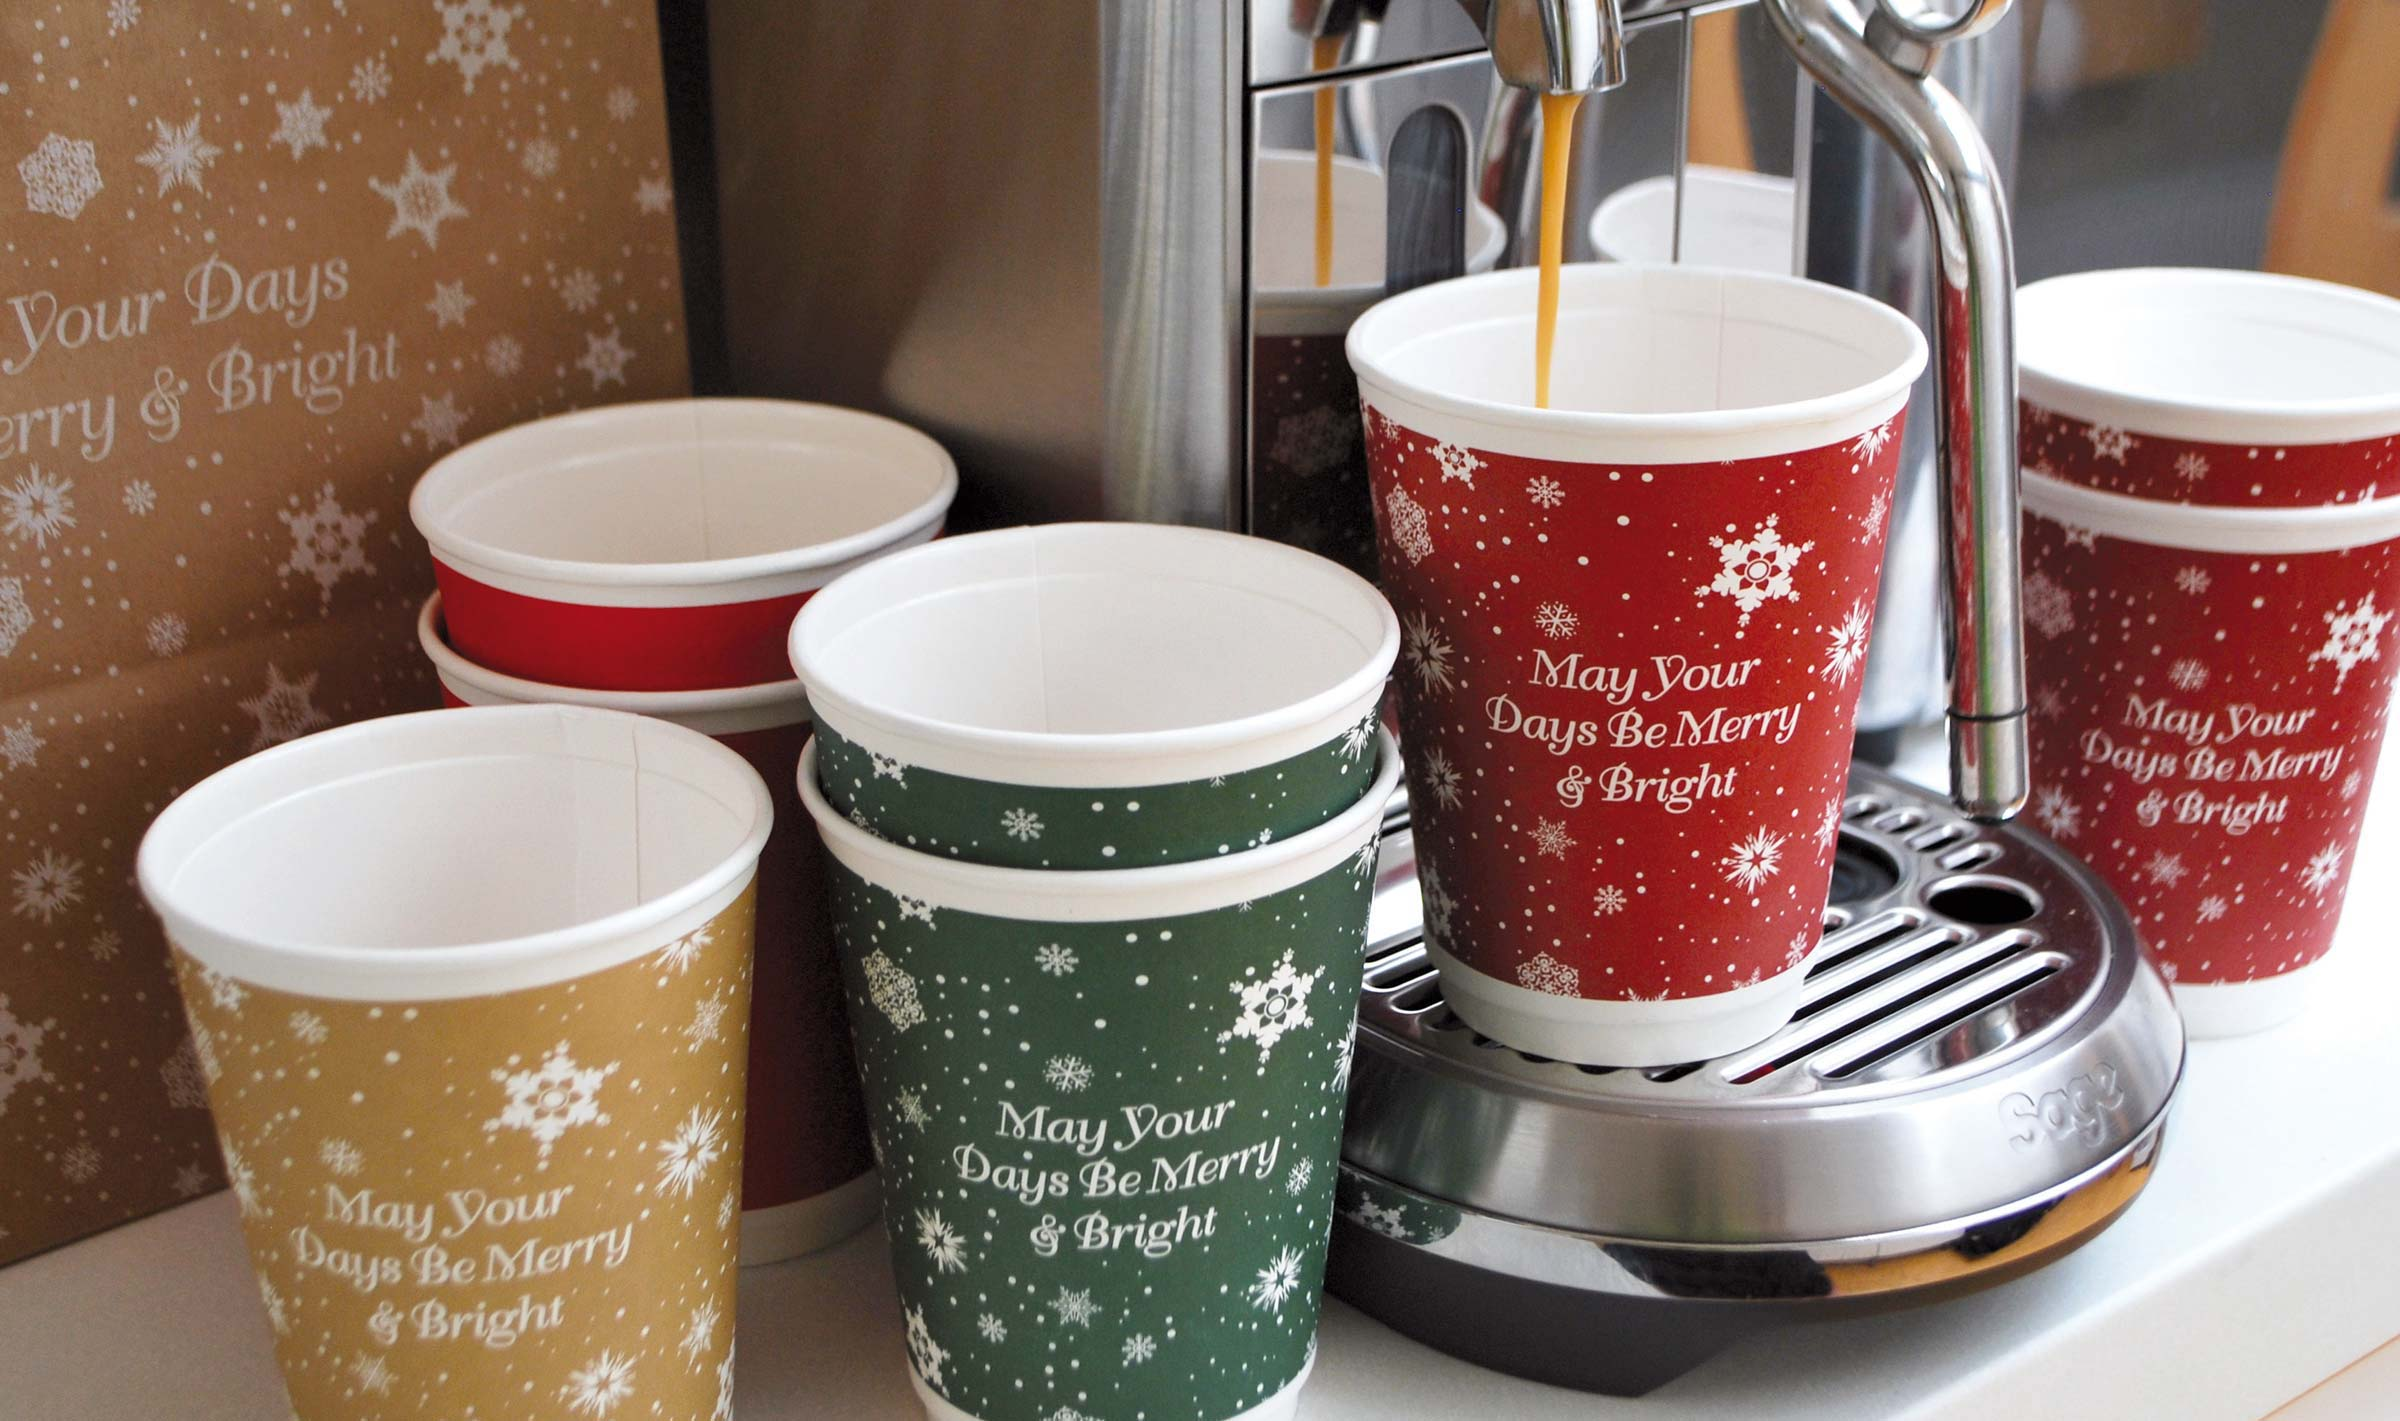 Café Connections Christmas cups